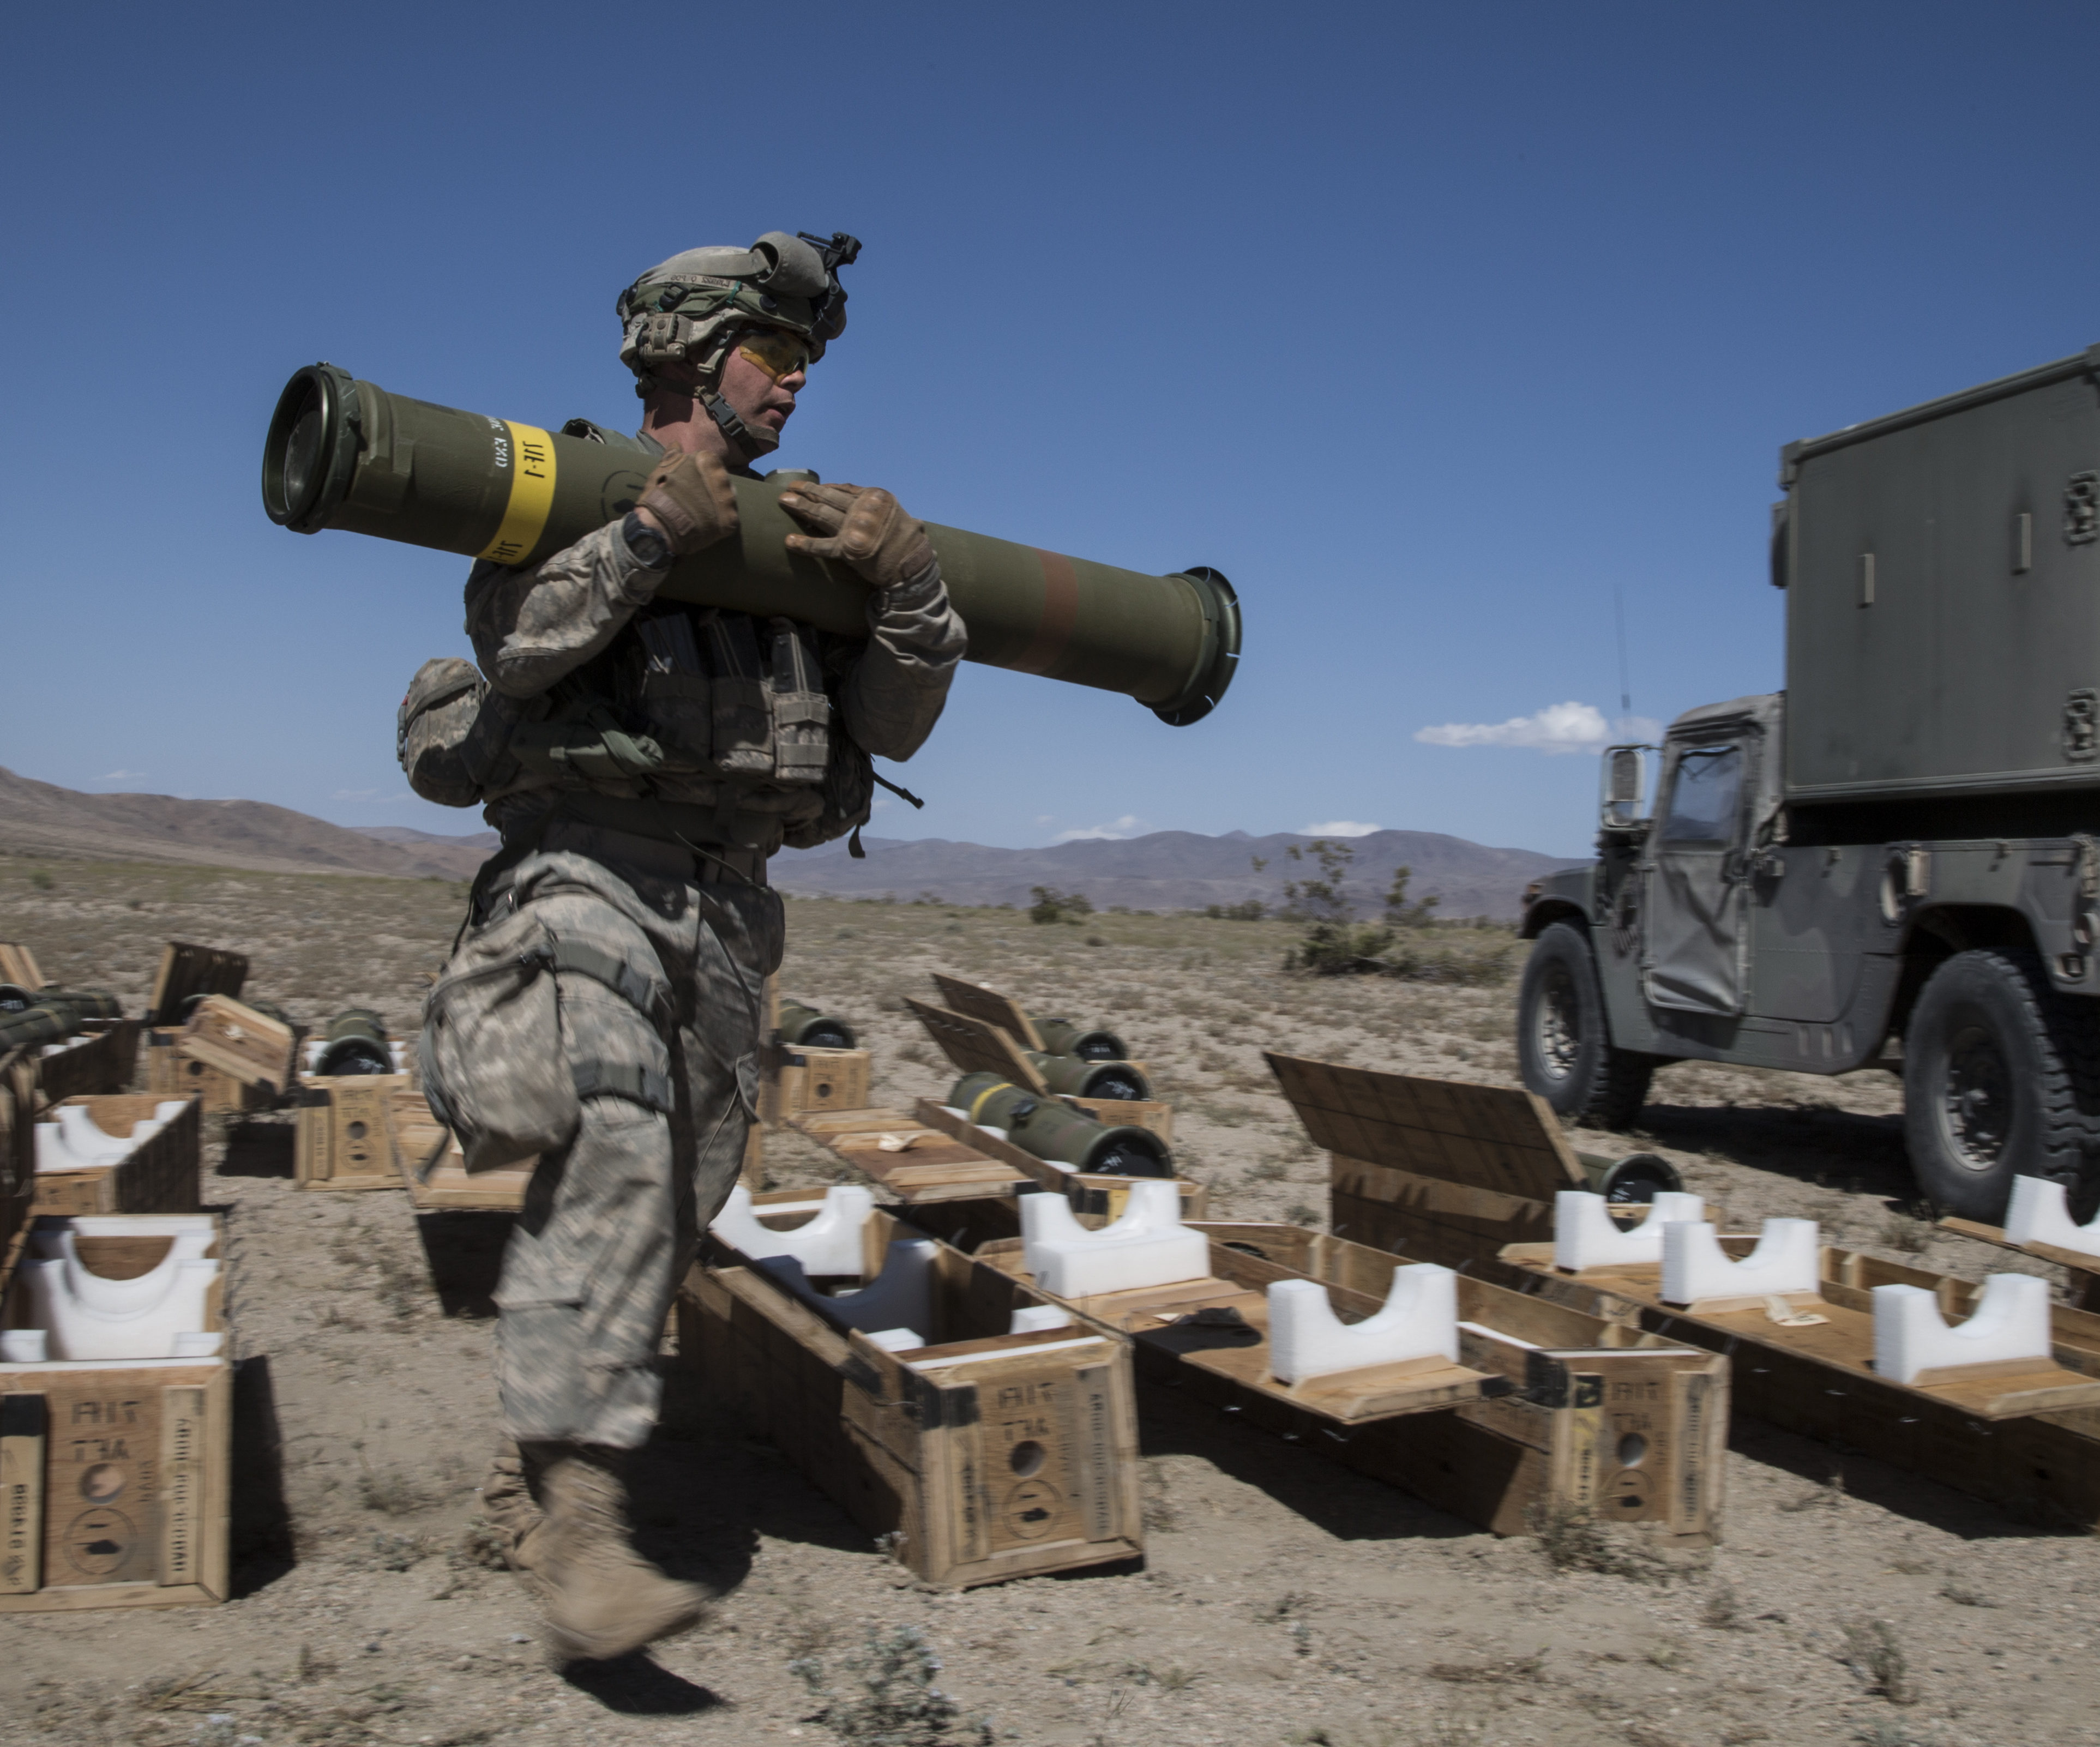 U.S. Army soldier holding a Tube-launched, Optically-tracked, Wire-guided (TOW) 2B Aero Missile at National Training Center, Fort Irwin, 2014. The anti-tank guided missile can hit targets over 4,000 miles away. (U.S. Army photo by Sgt. Richard W. Jones Jr./Released)